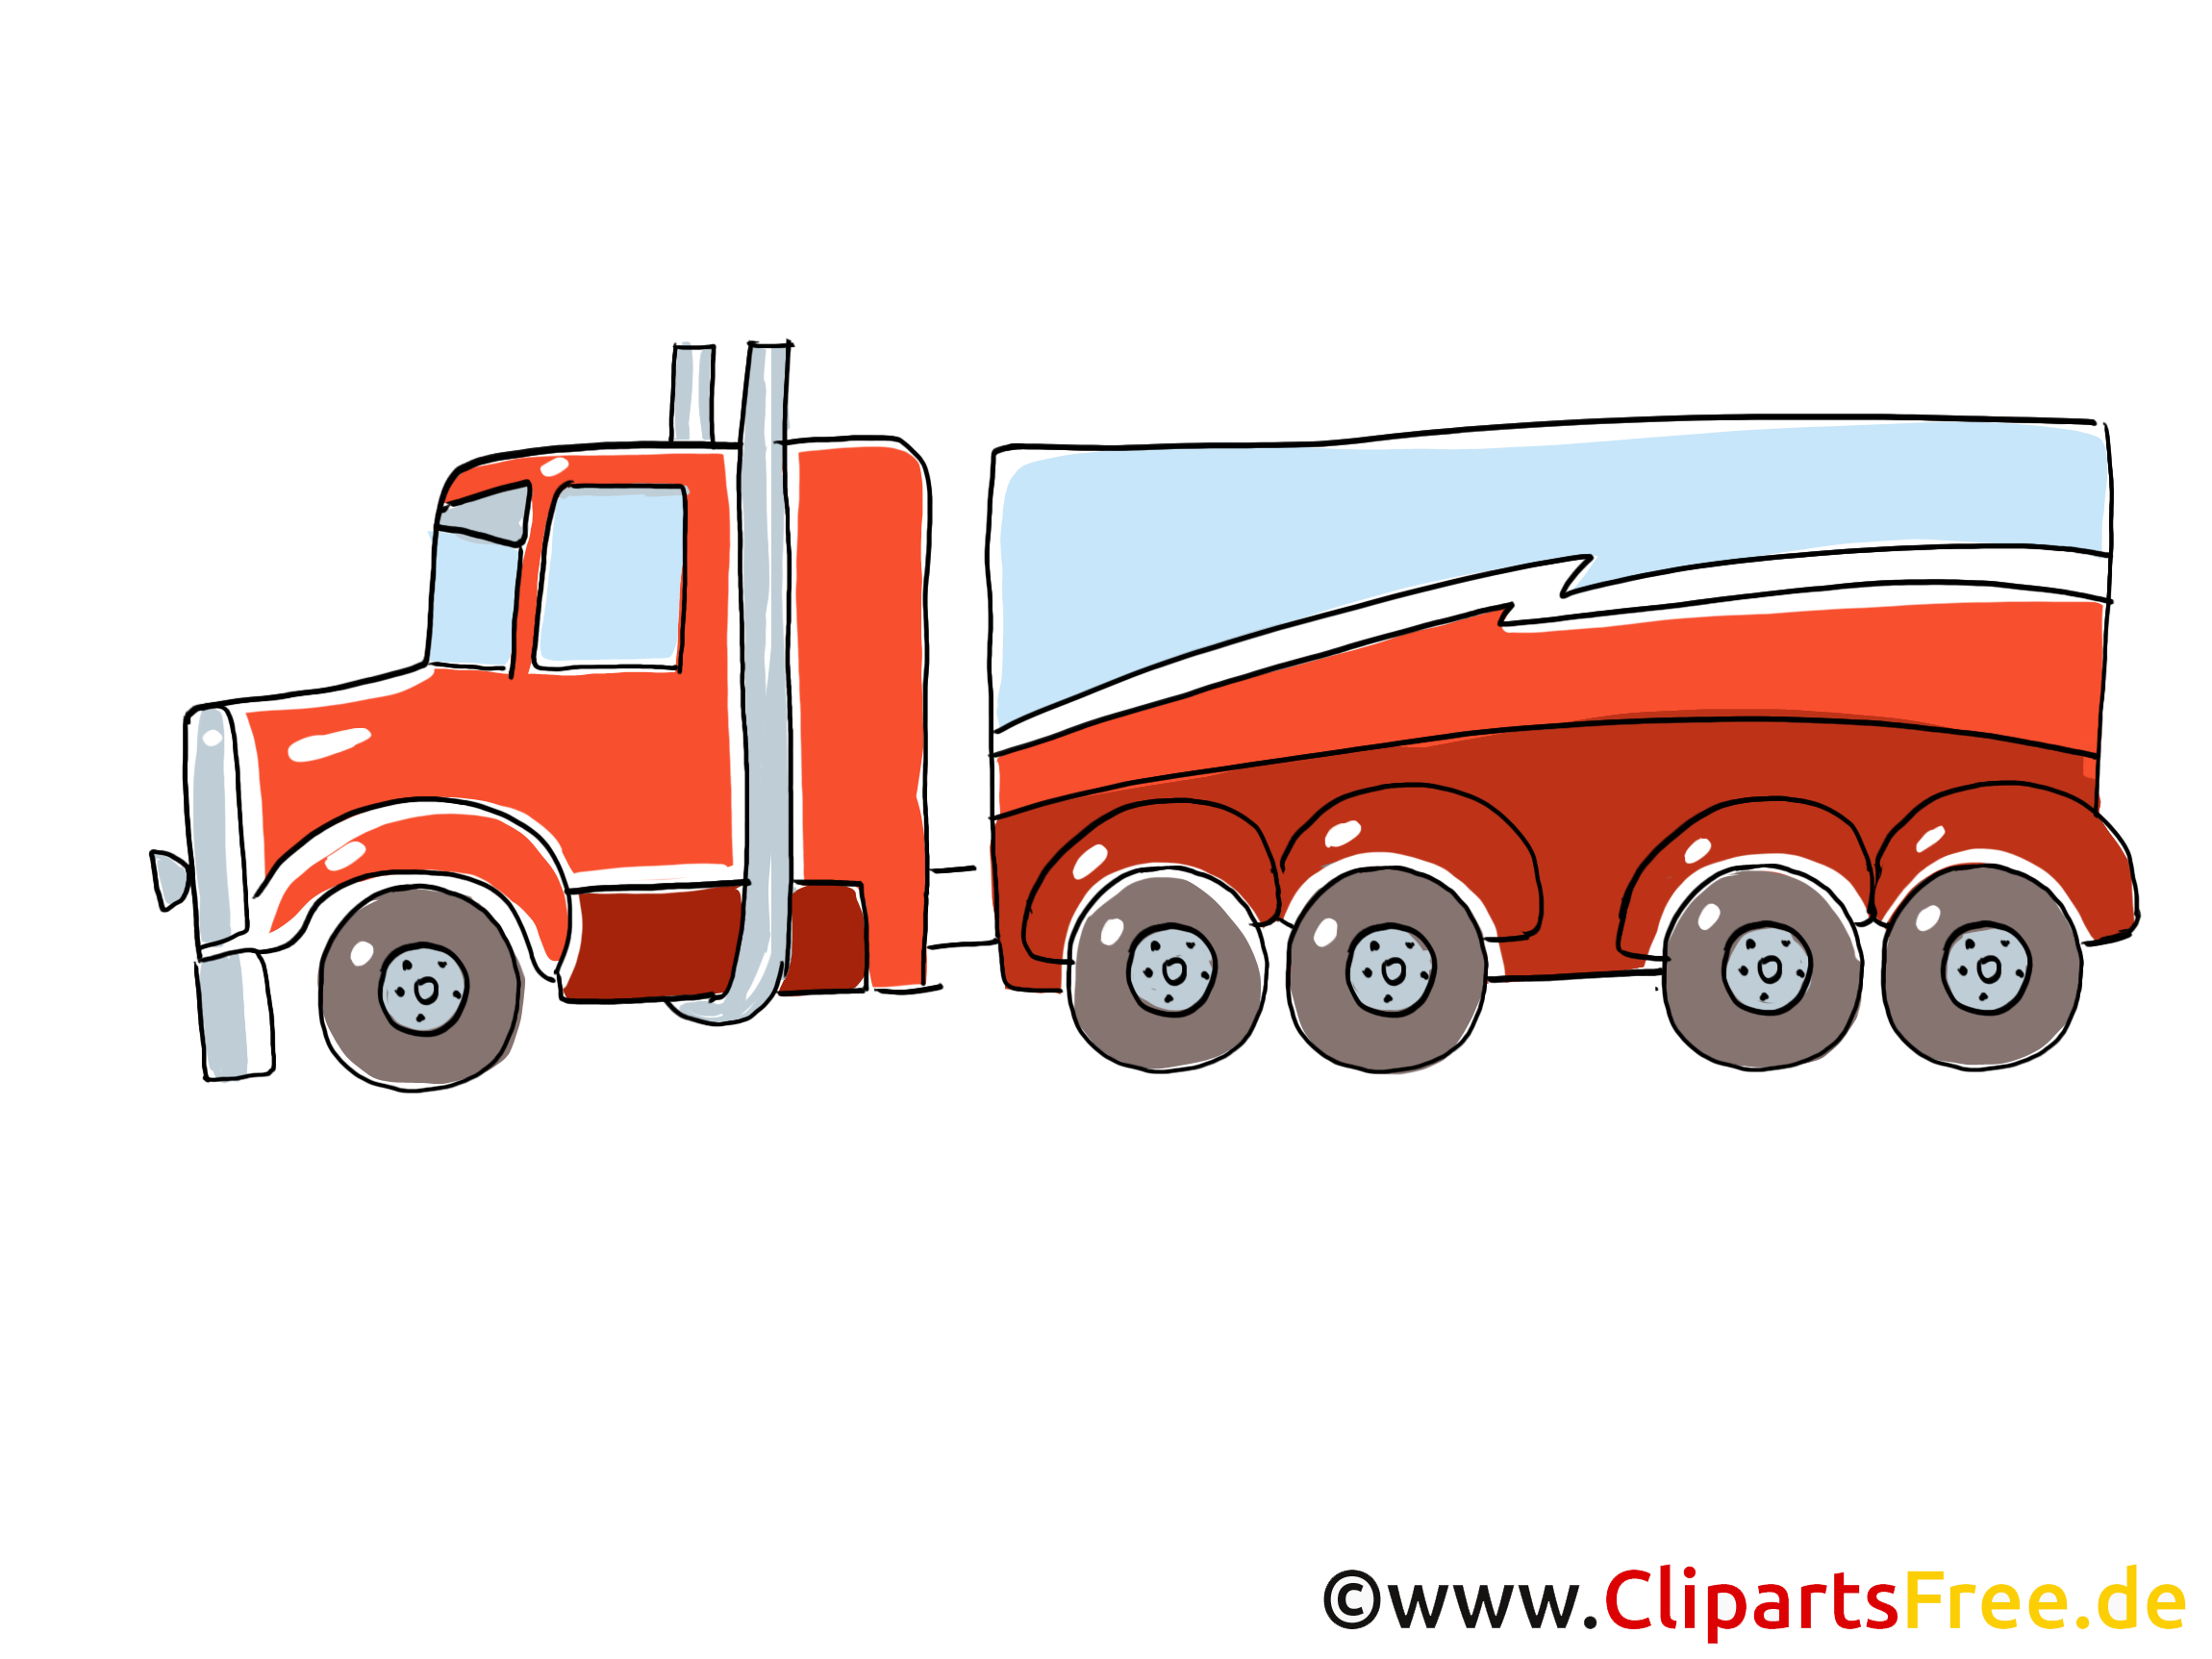 Truck Clip Art, Pic, Image free